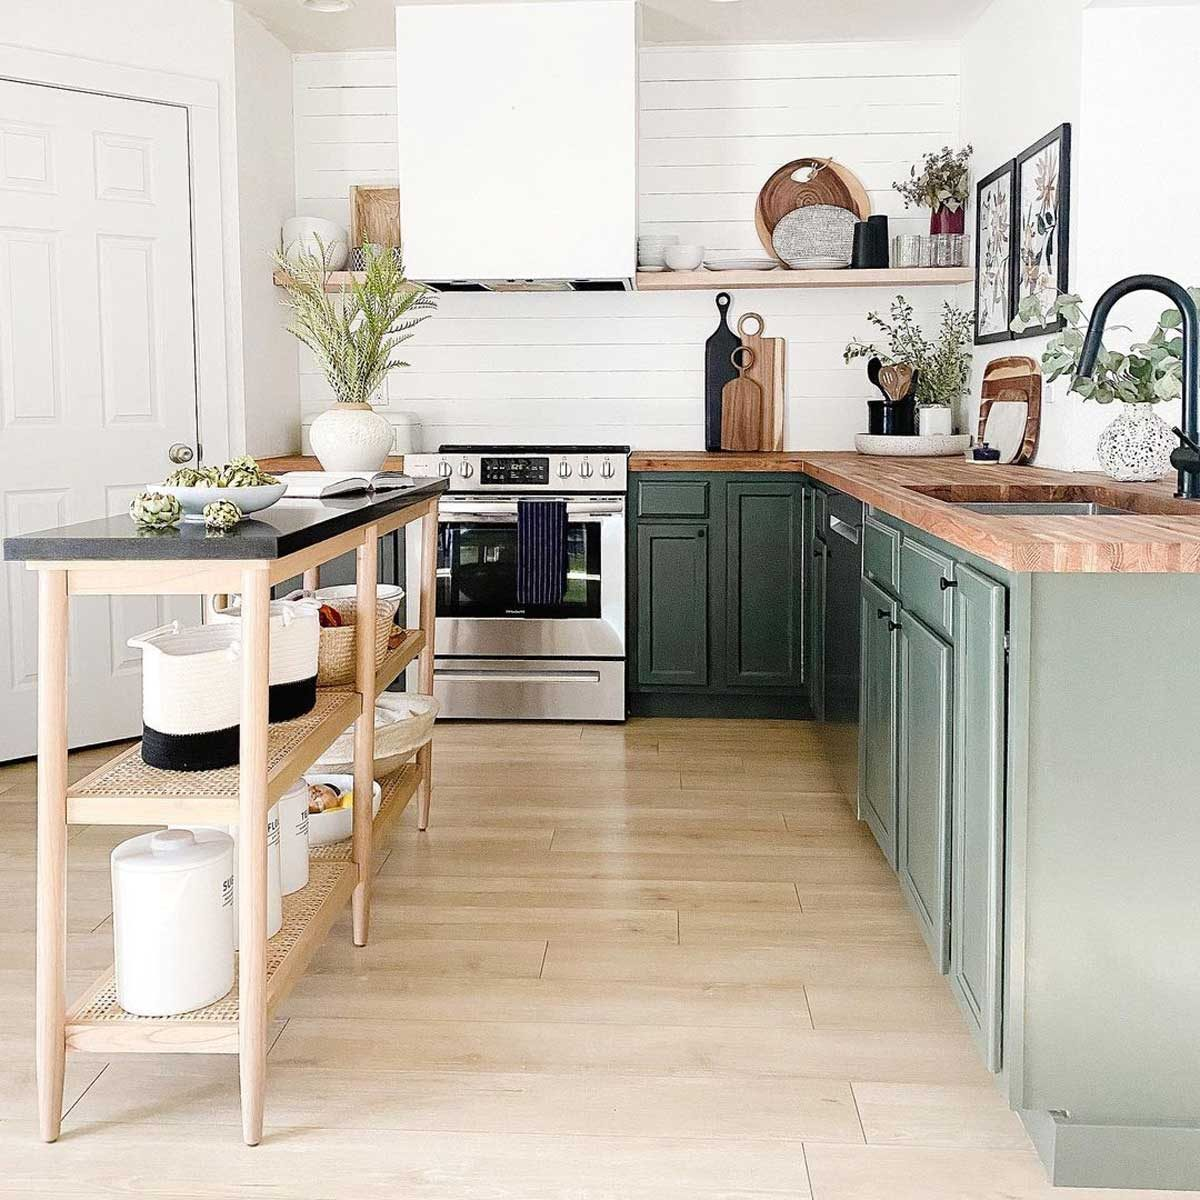 Kitchen with a DIY island